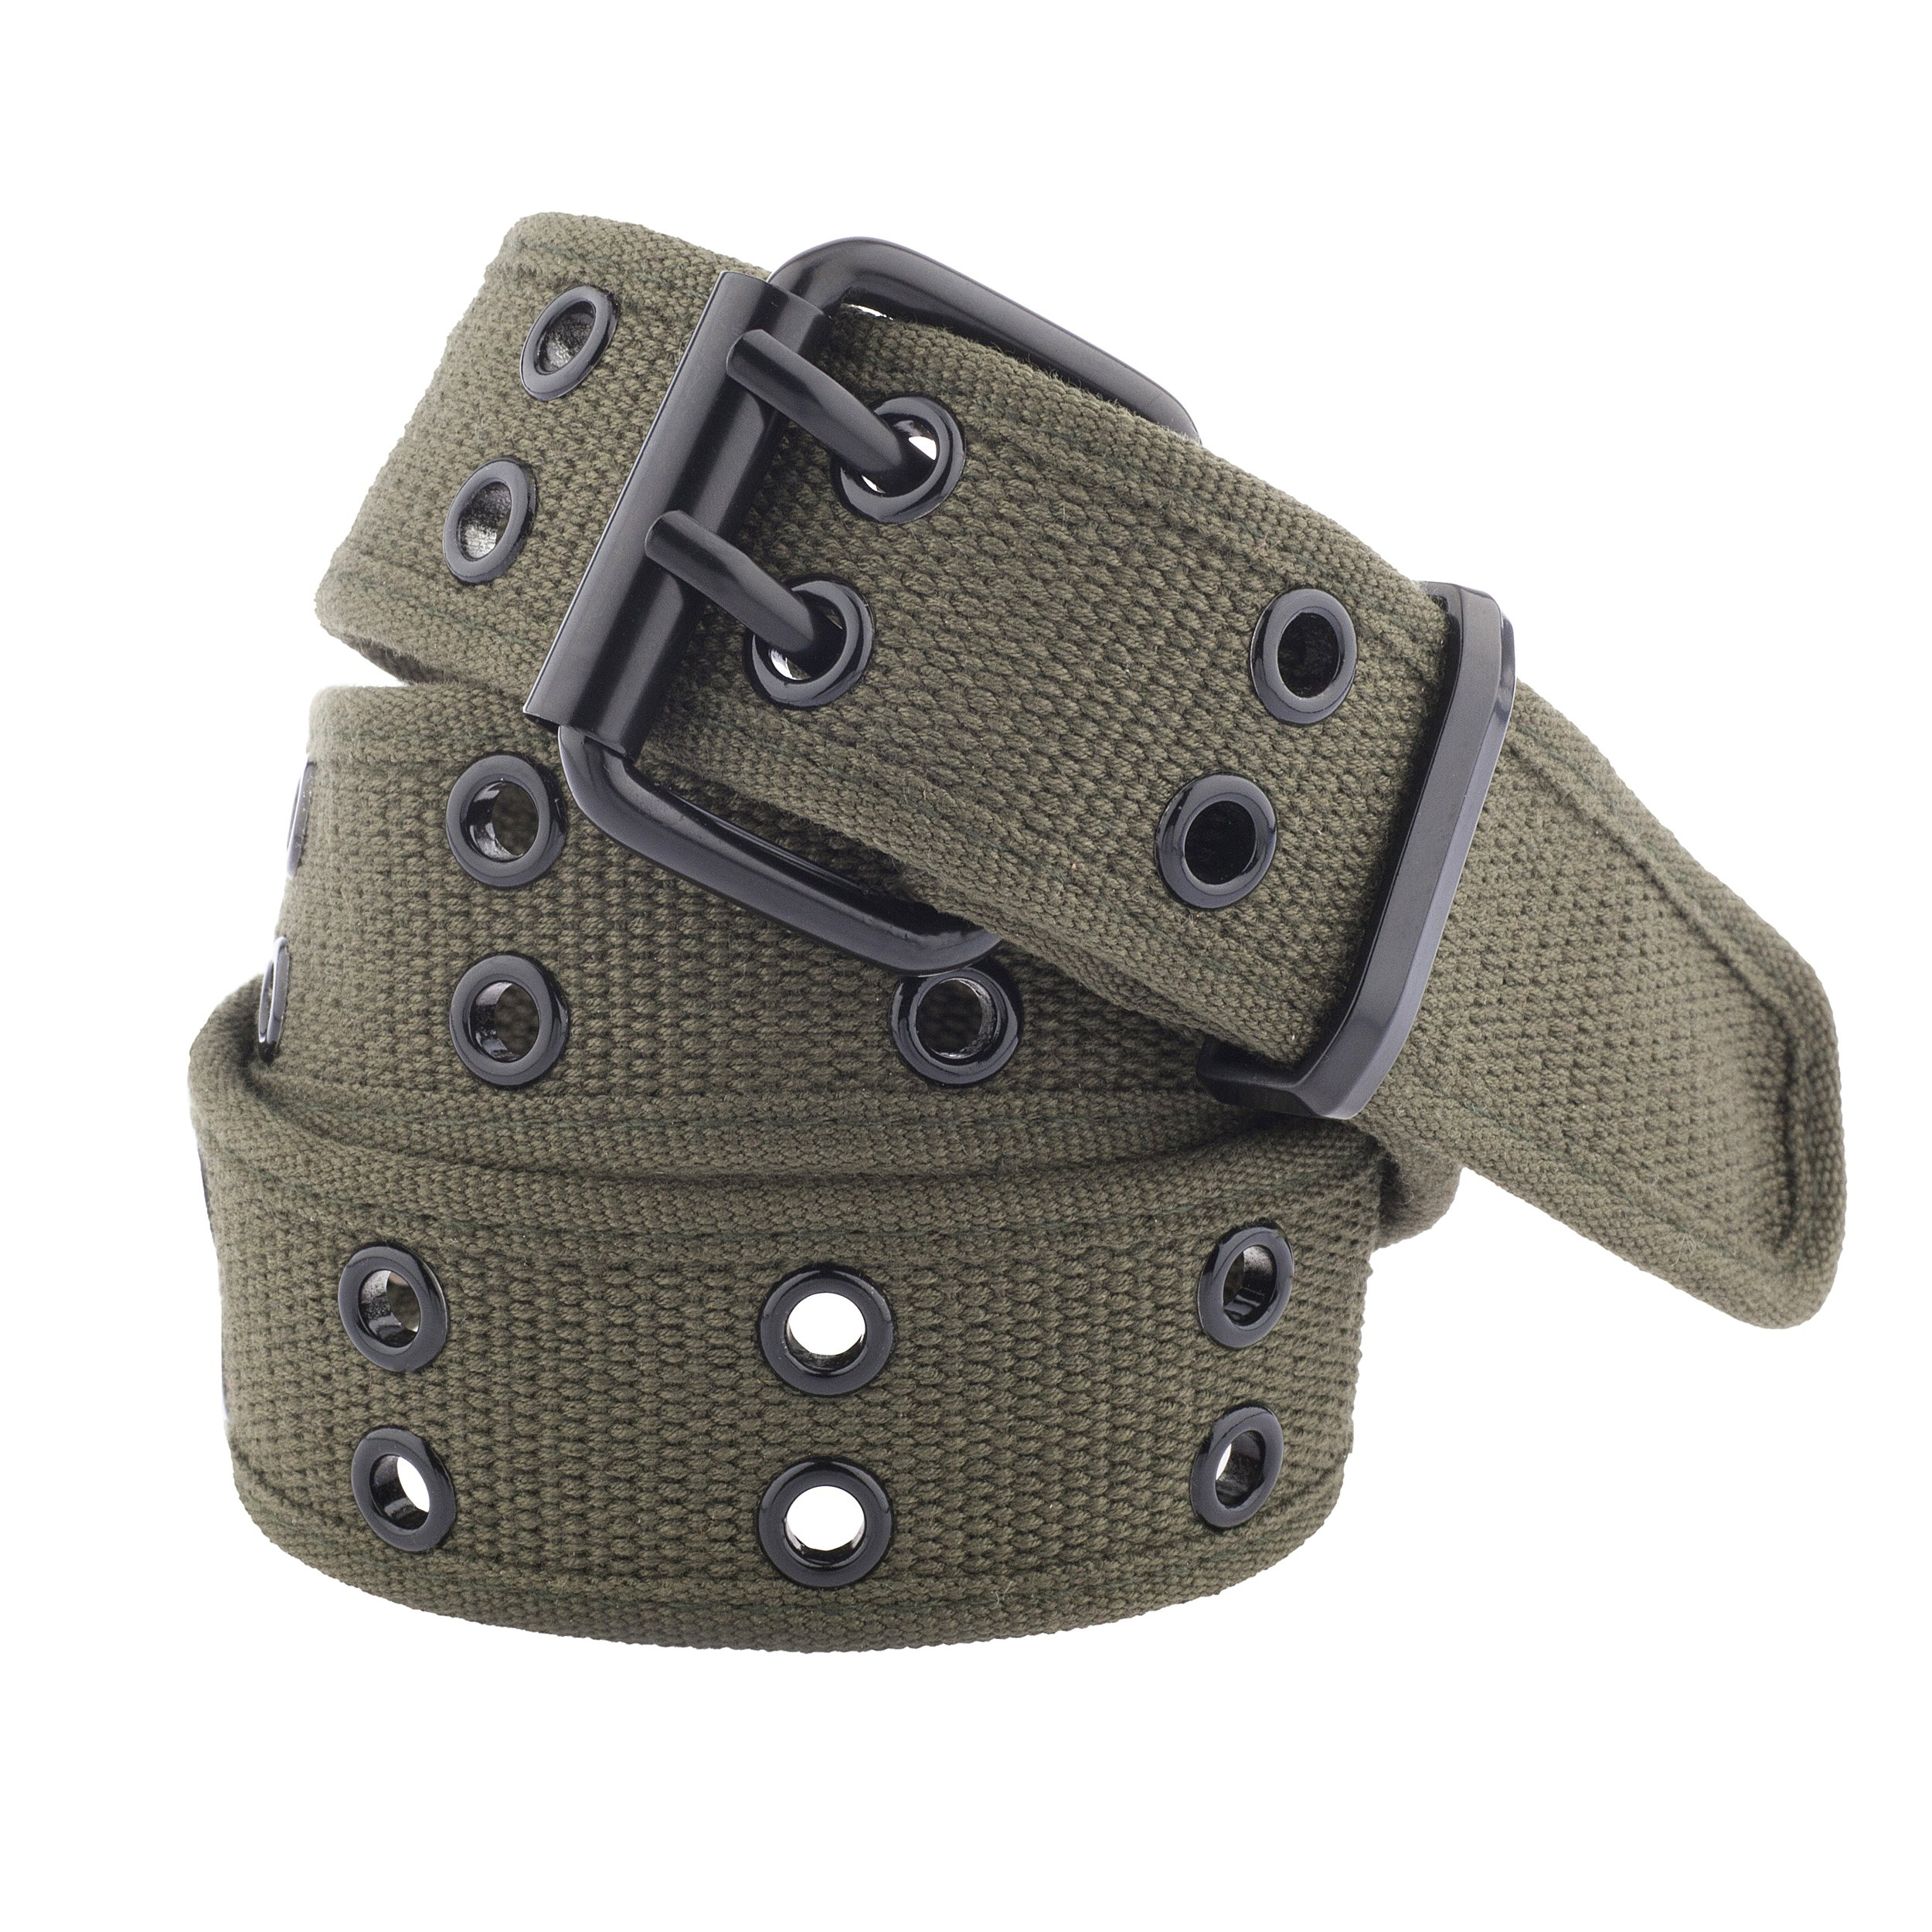 Unisex Two-Hole Canvas Belt - Available in 13 Colors (WB-211) (Large, Olive)